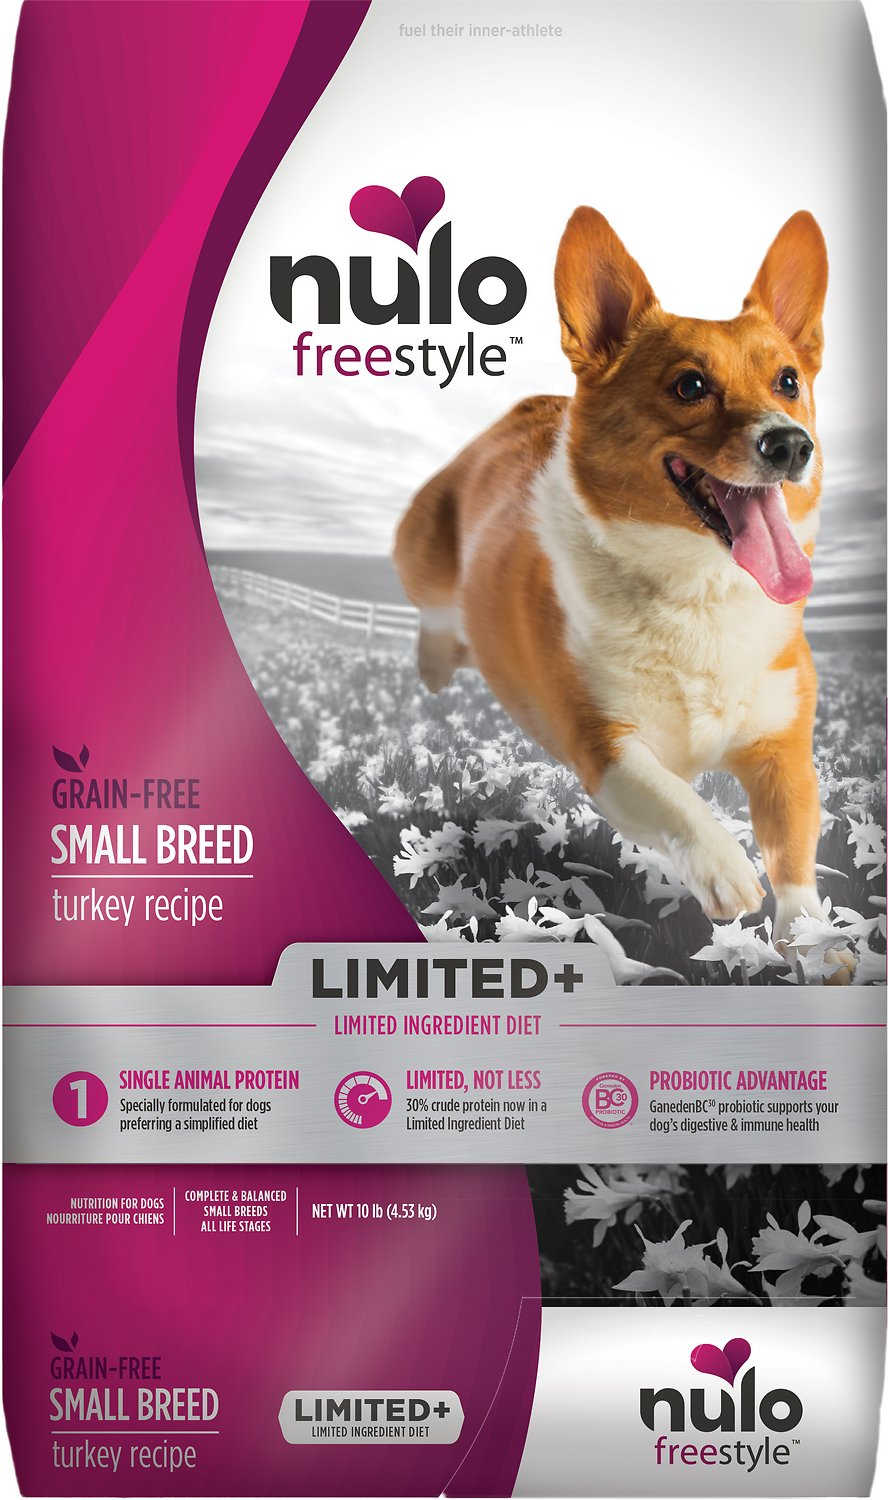 Nulo Dog Freestyle Limited+ Turkey Recipe Grain-Free Small Breed Adult Dry Dog Food Image